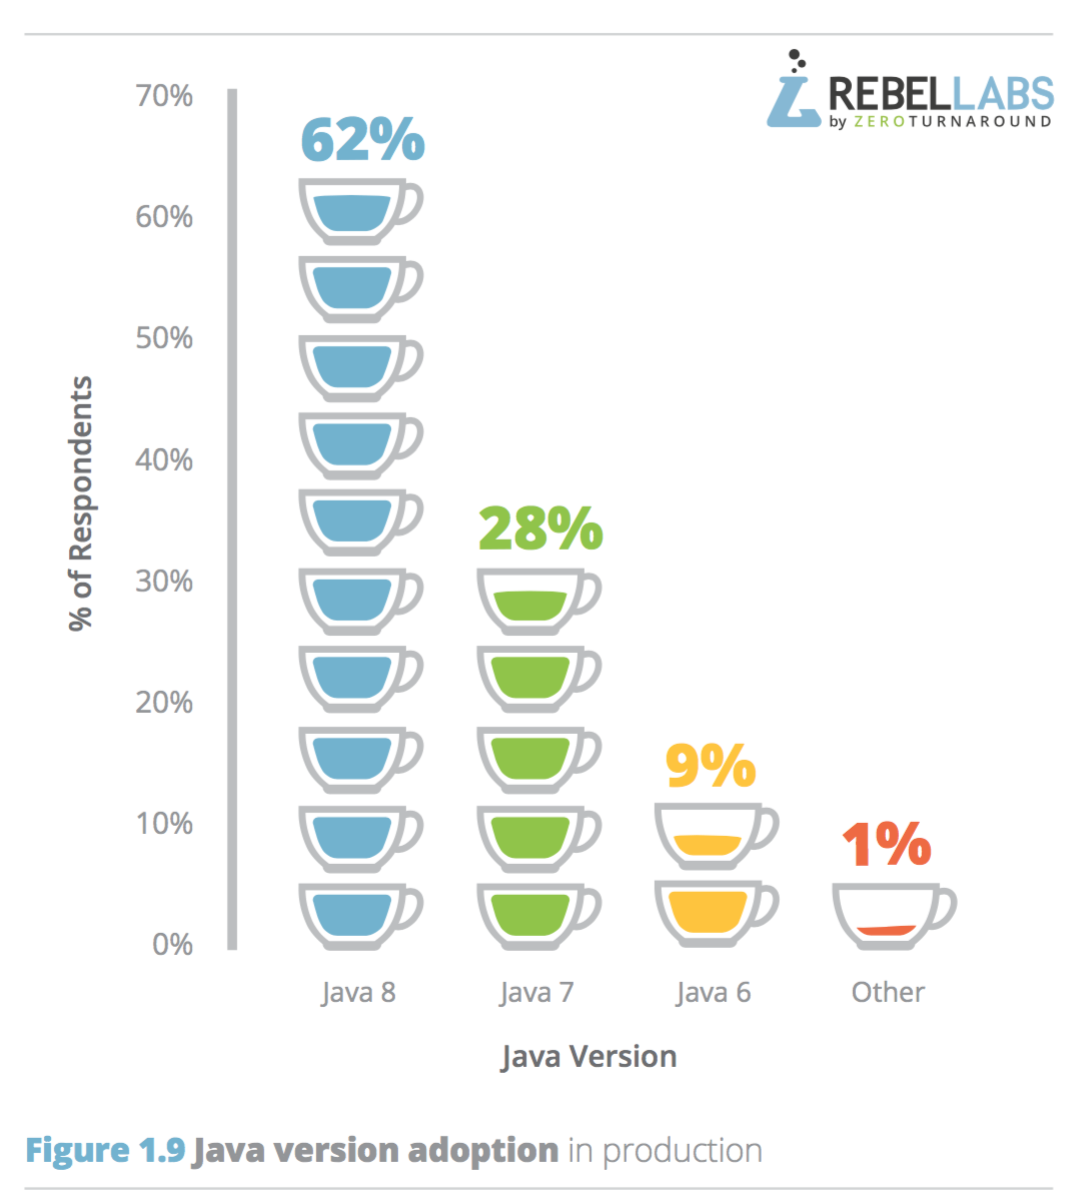 java-8-is-the-most-popular-java-version